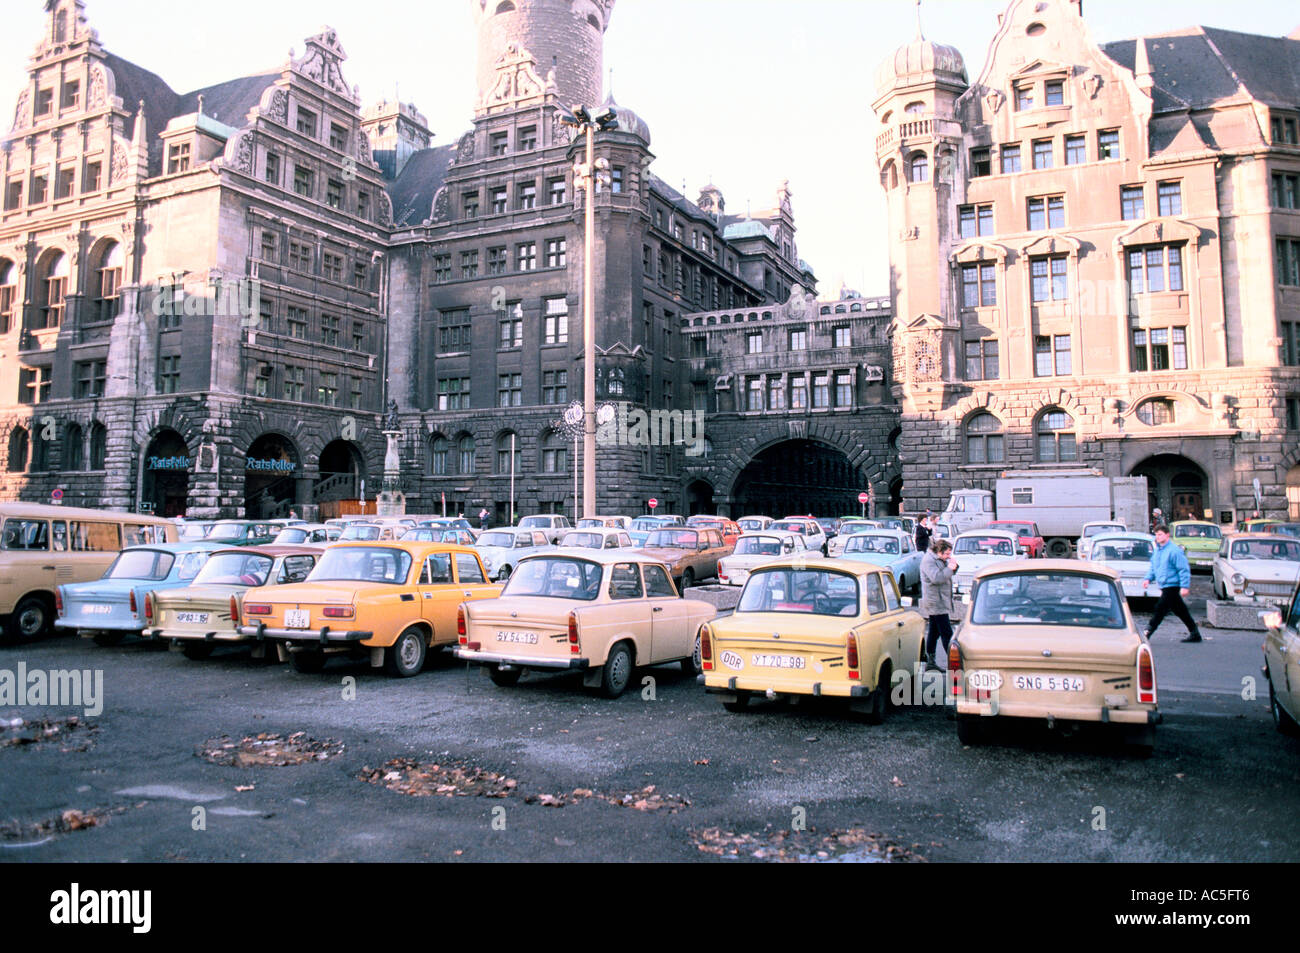 LEIPZIG CARS EAST GERMANY IN THE 1980'S TRABANT CARS - Stock Image